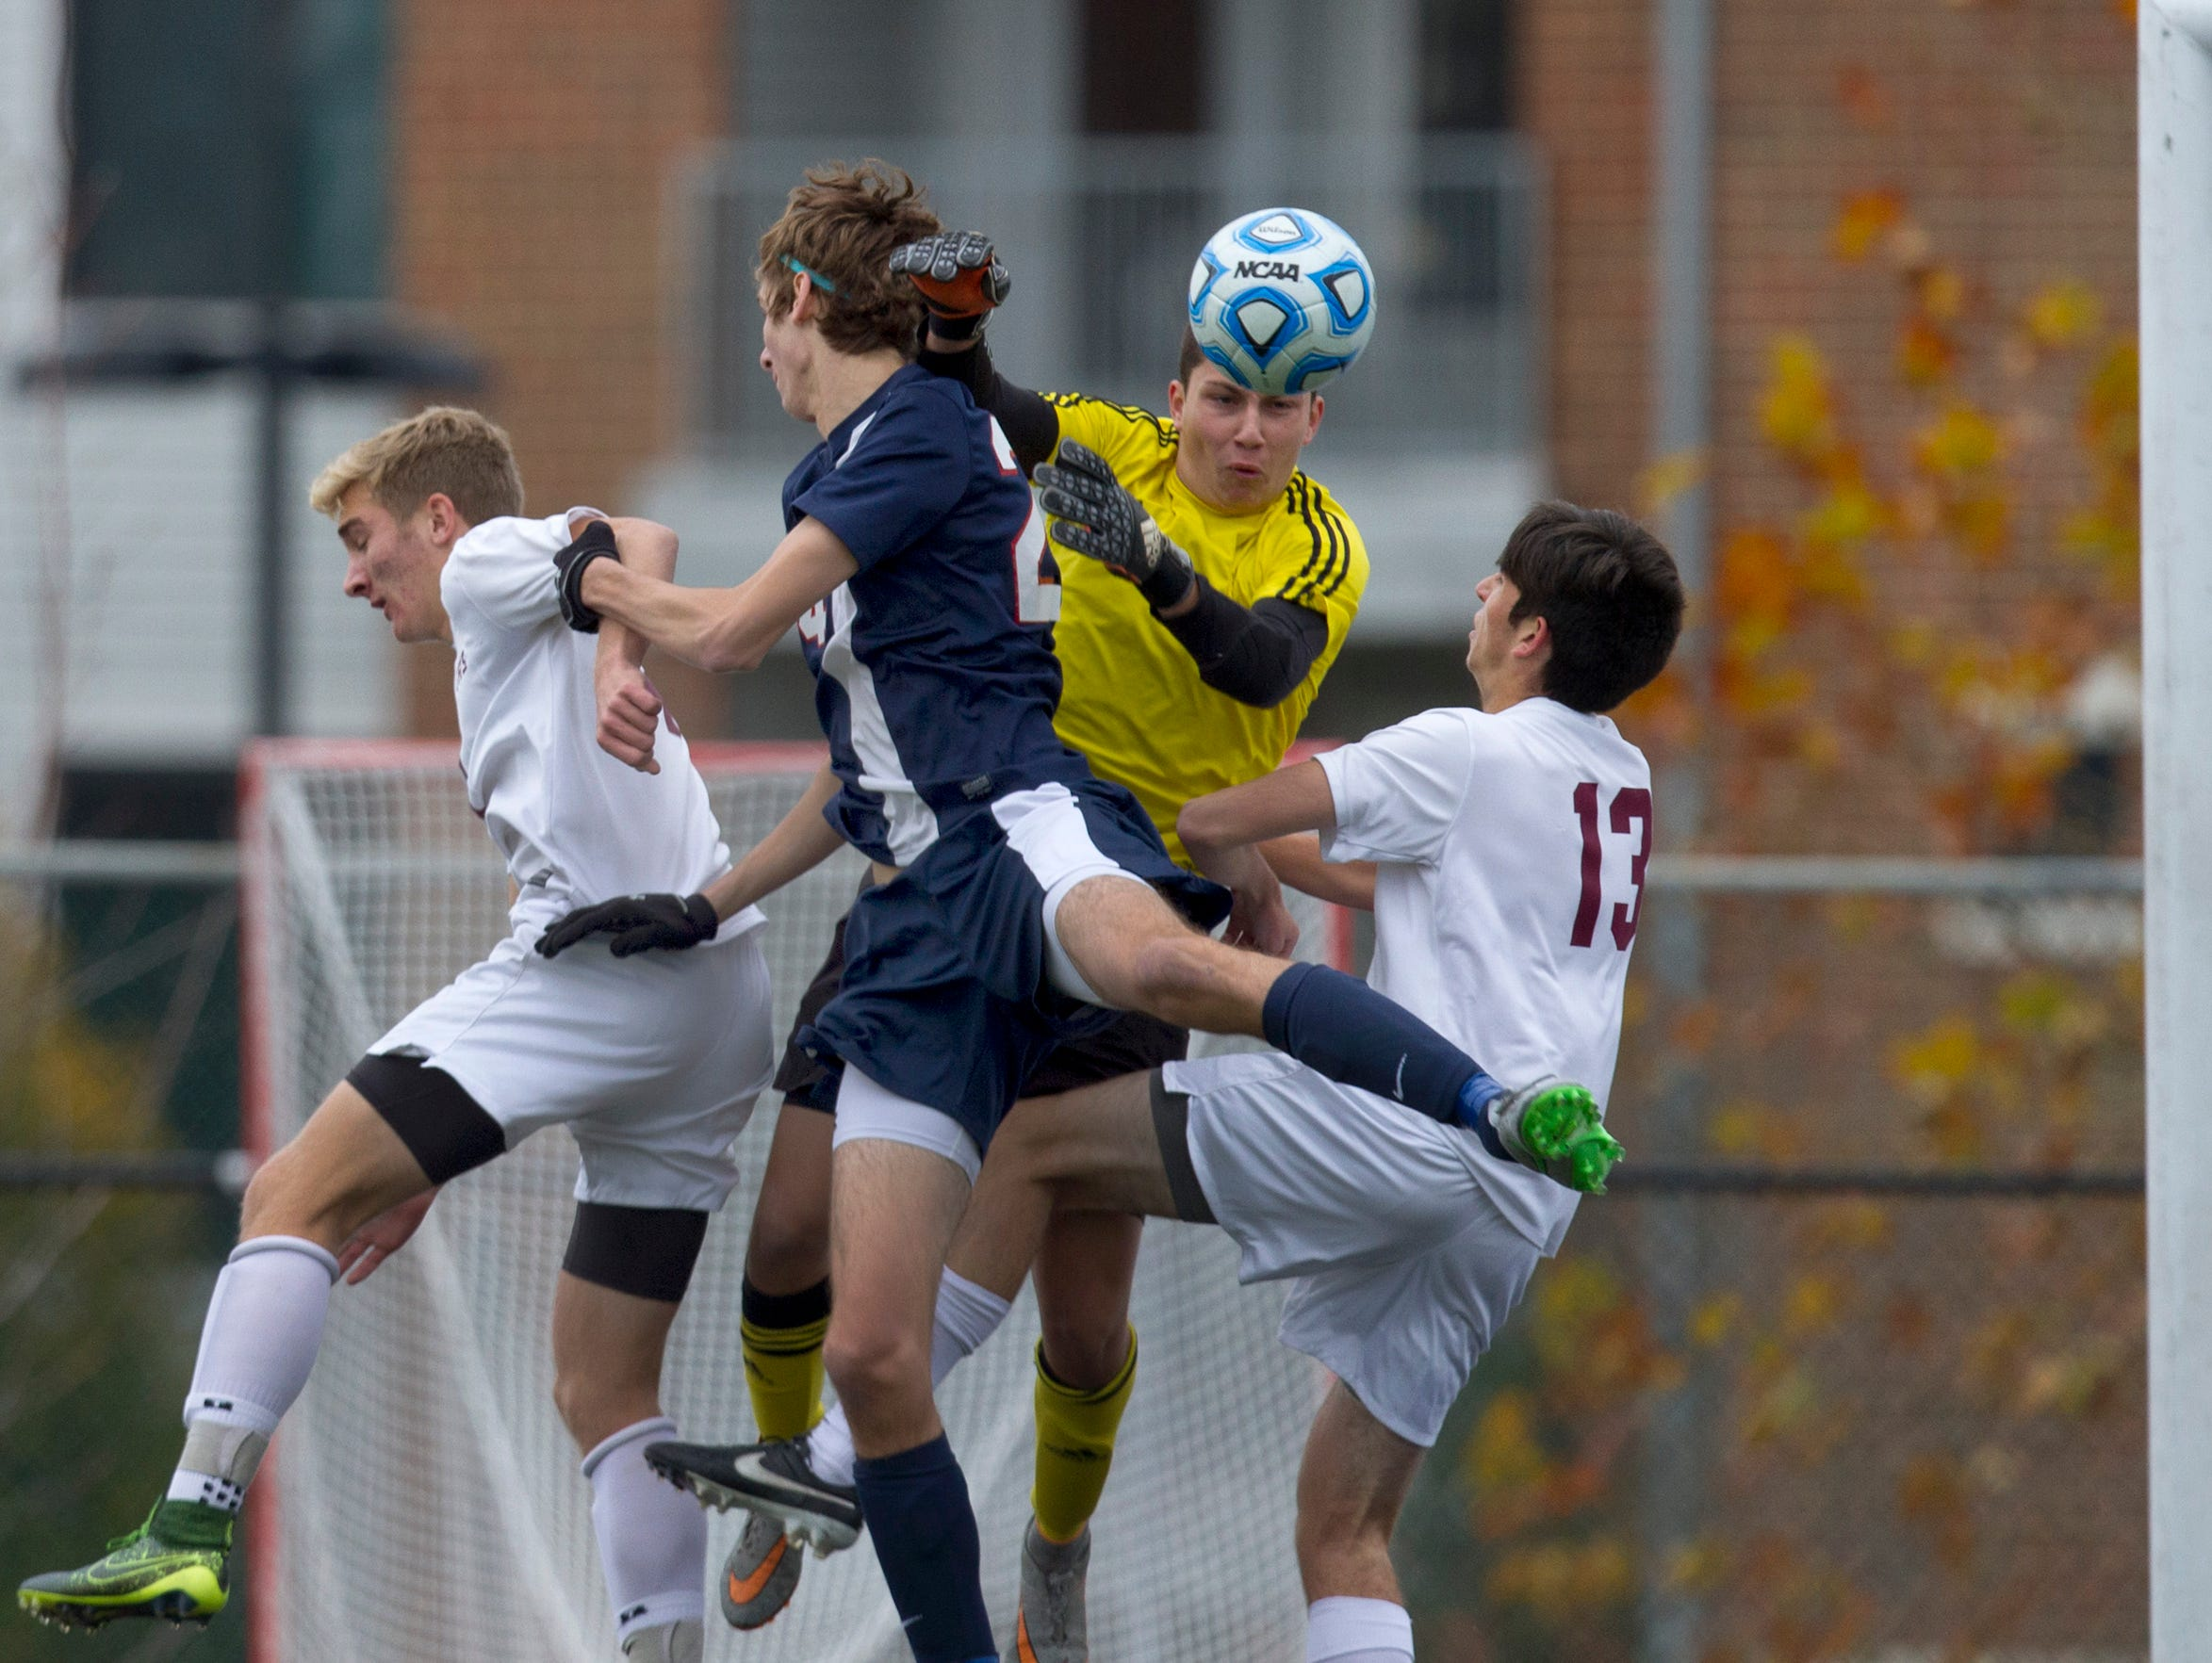 Toms River South goalie Dom Pizzi battles in front of goal during second half action. Toms River South Boys Soccer vs West Morris Mendham in NJSIAA State Group III Championship at Kean University on November 22, 2015 in Union, NJ.